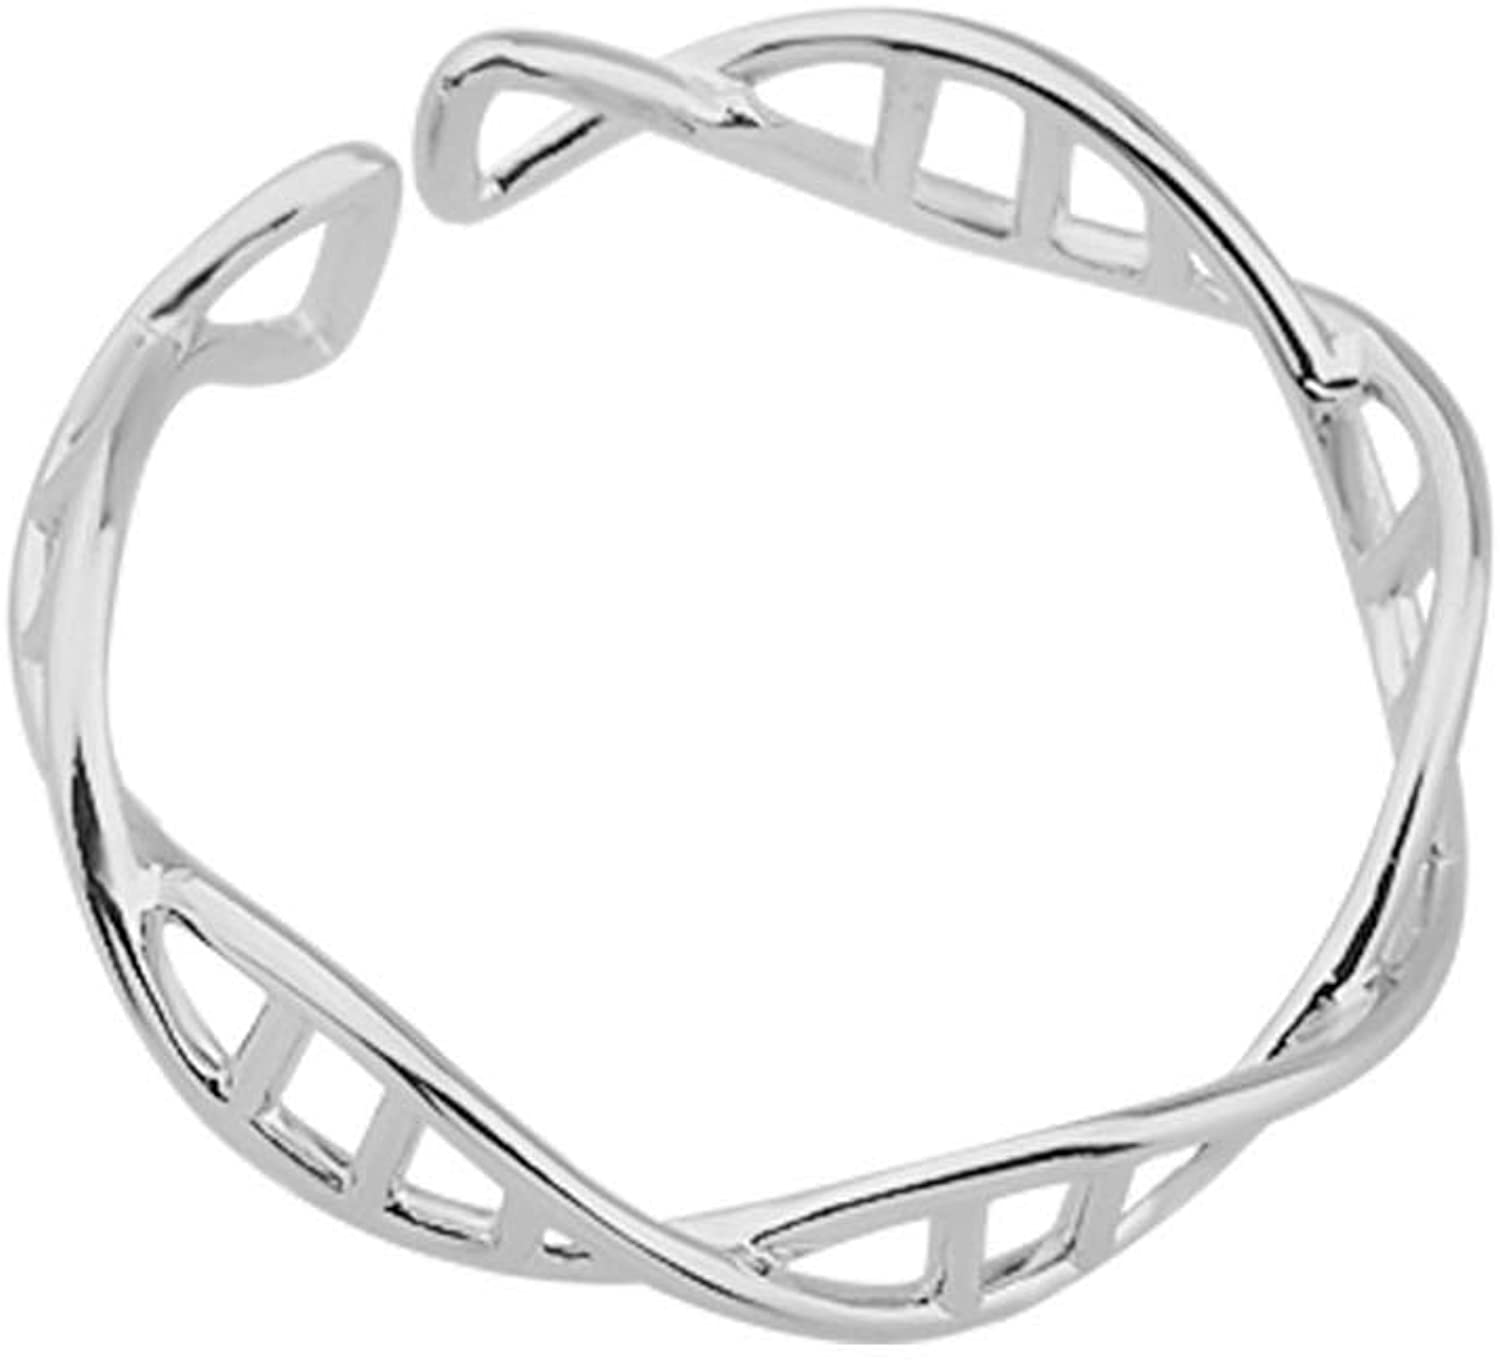 Zuo Bao Stainless Steel DNA Helix Band Chemistry Science Molecule Twist Finger Ring Adjustable Ring Creative Gift for Biology Chemistry Teacher